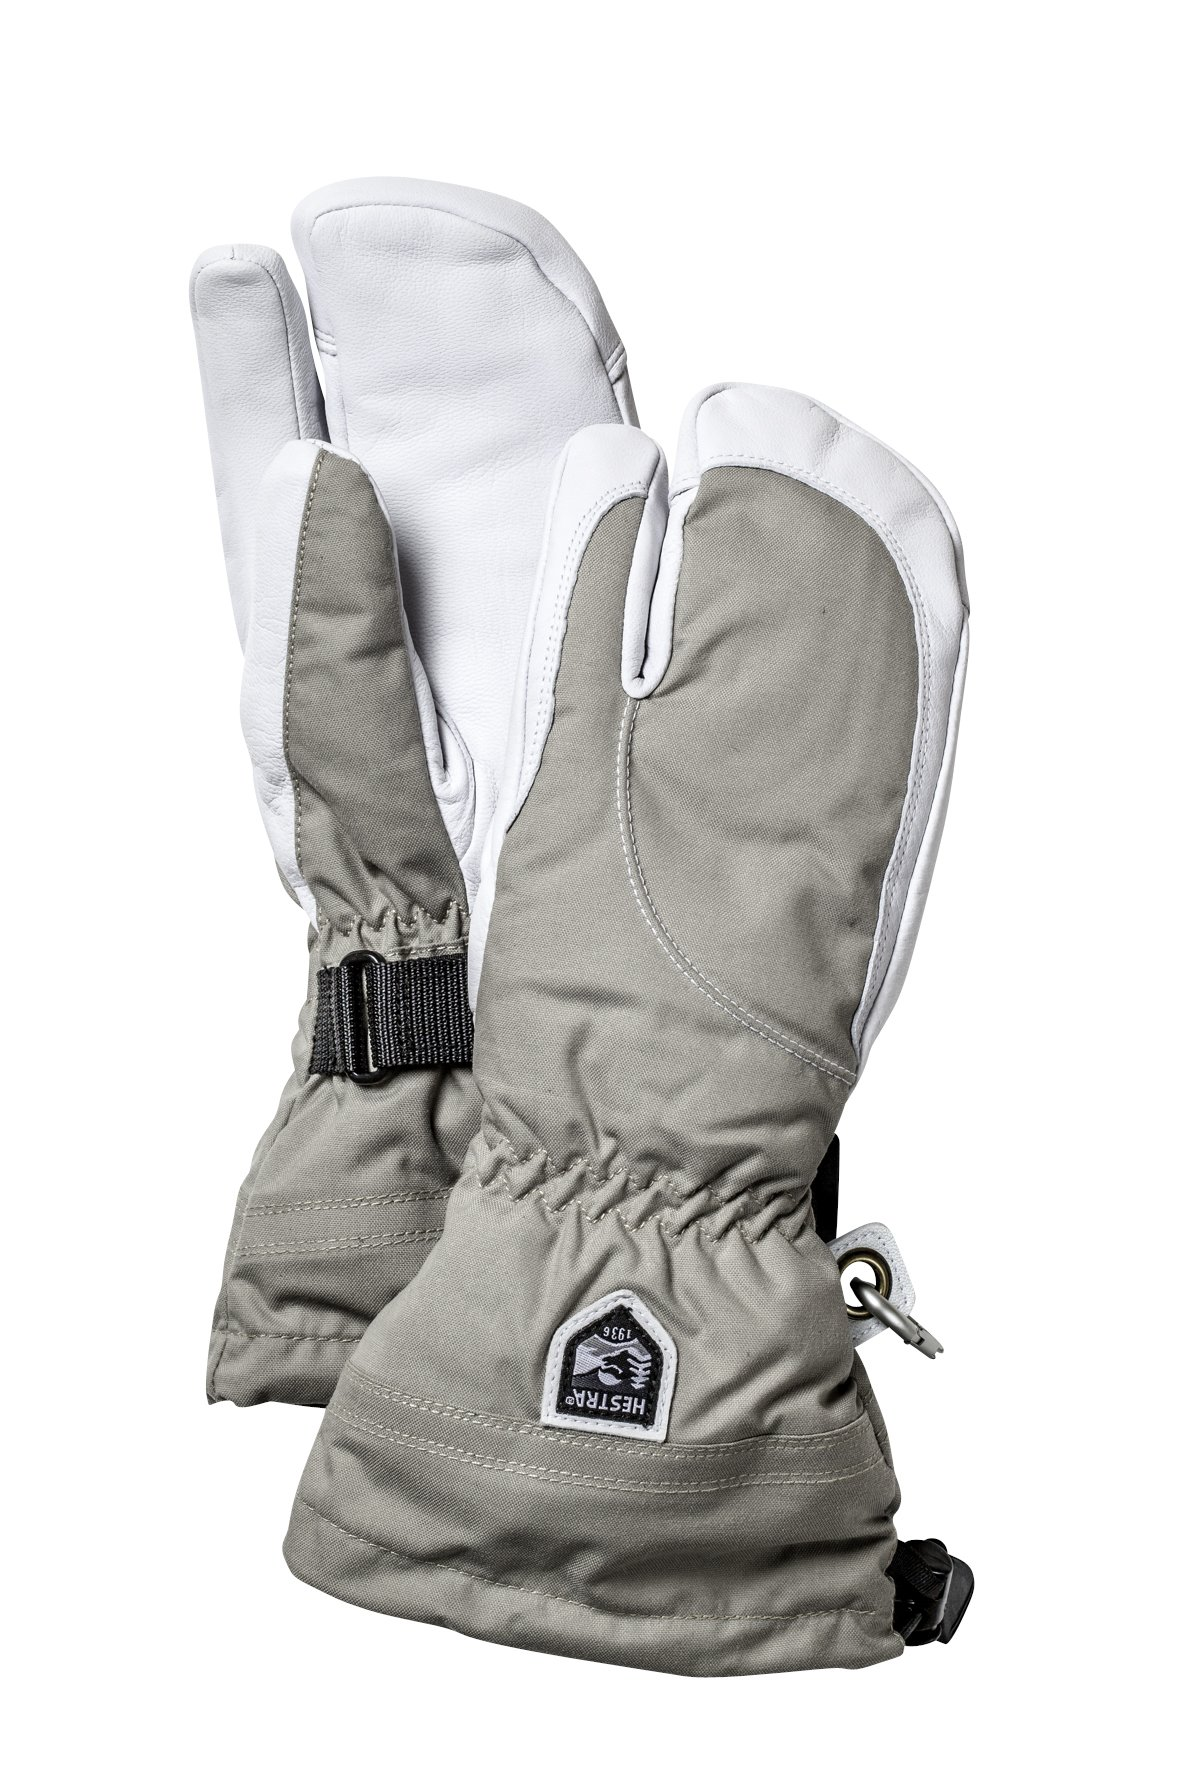 Hestra Women's Heli 3-Finger Gloves, Khaki/Off White, 7 by Hestra (Image #1)